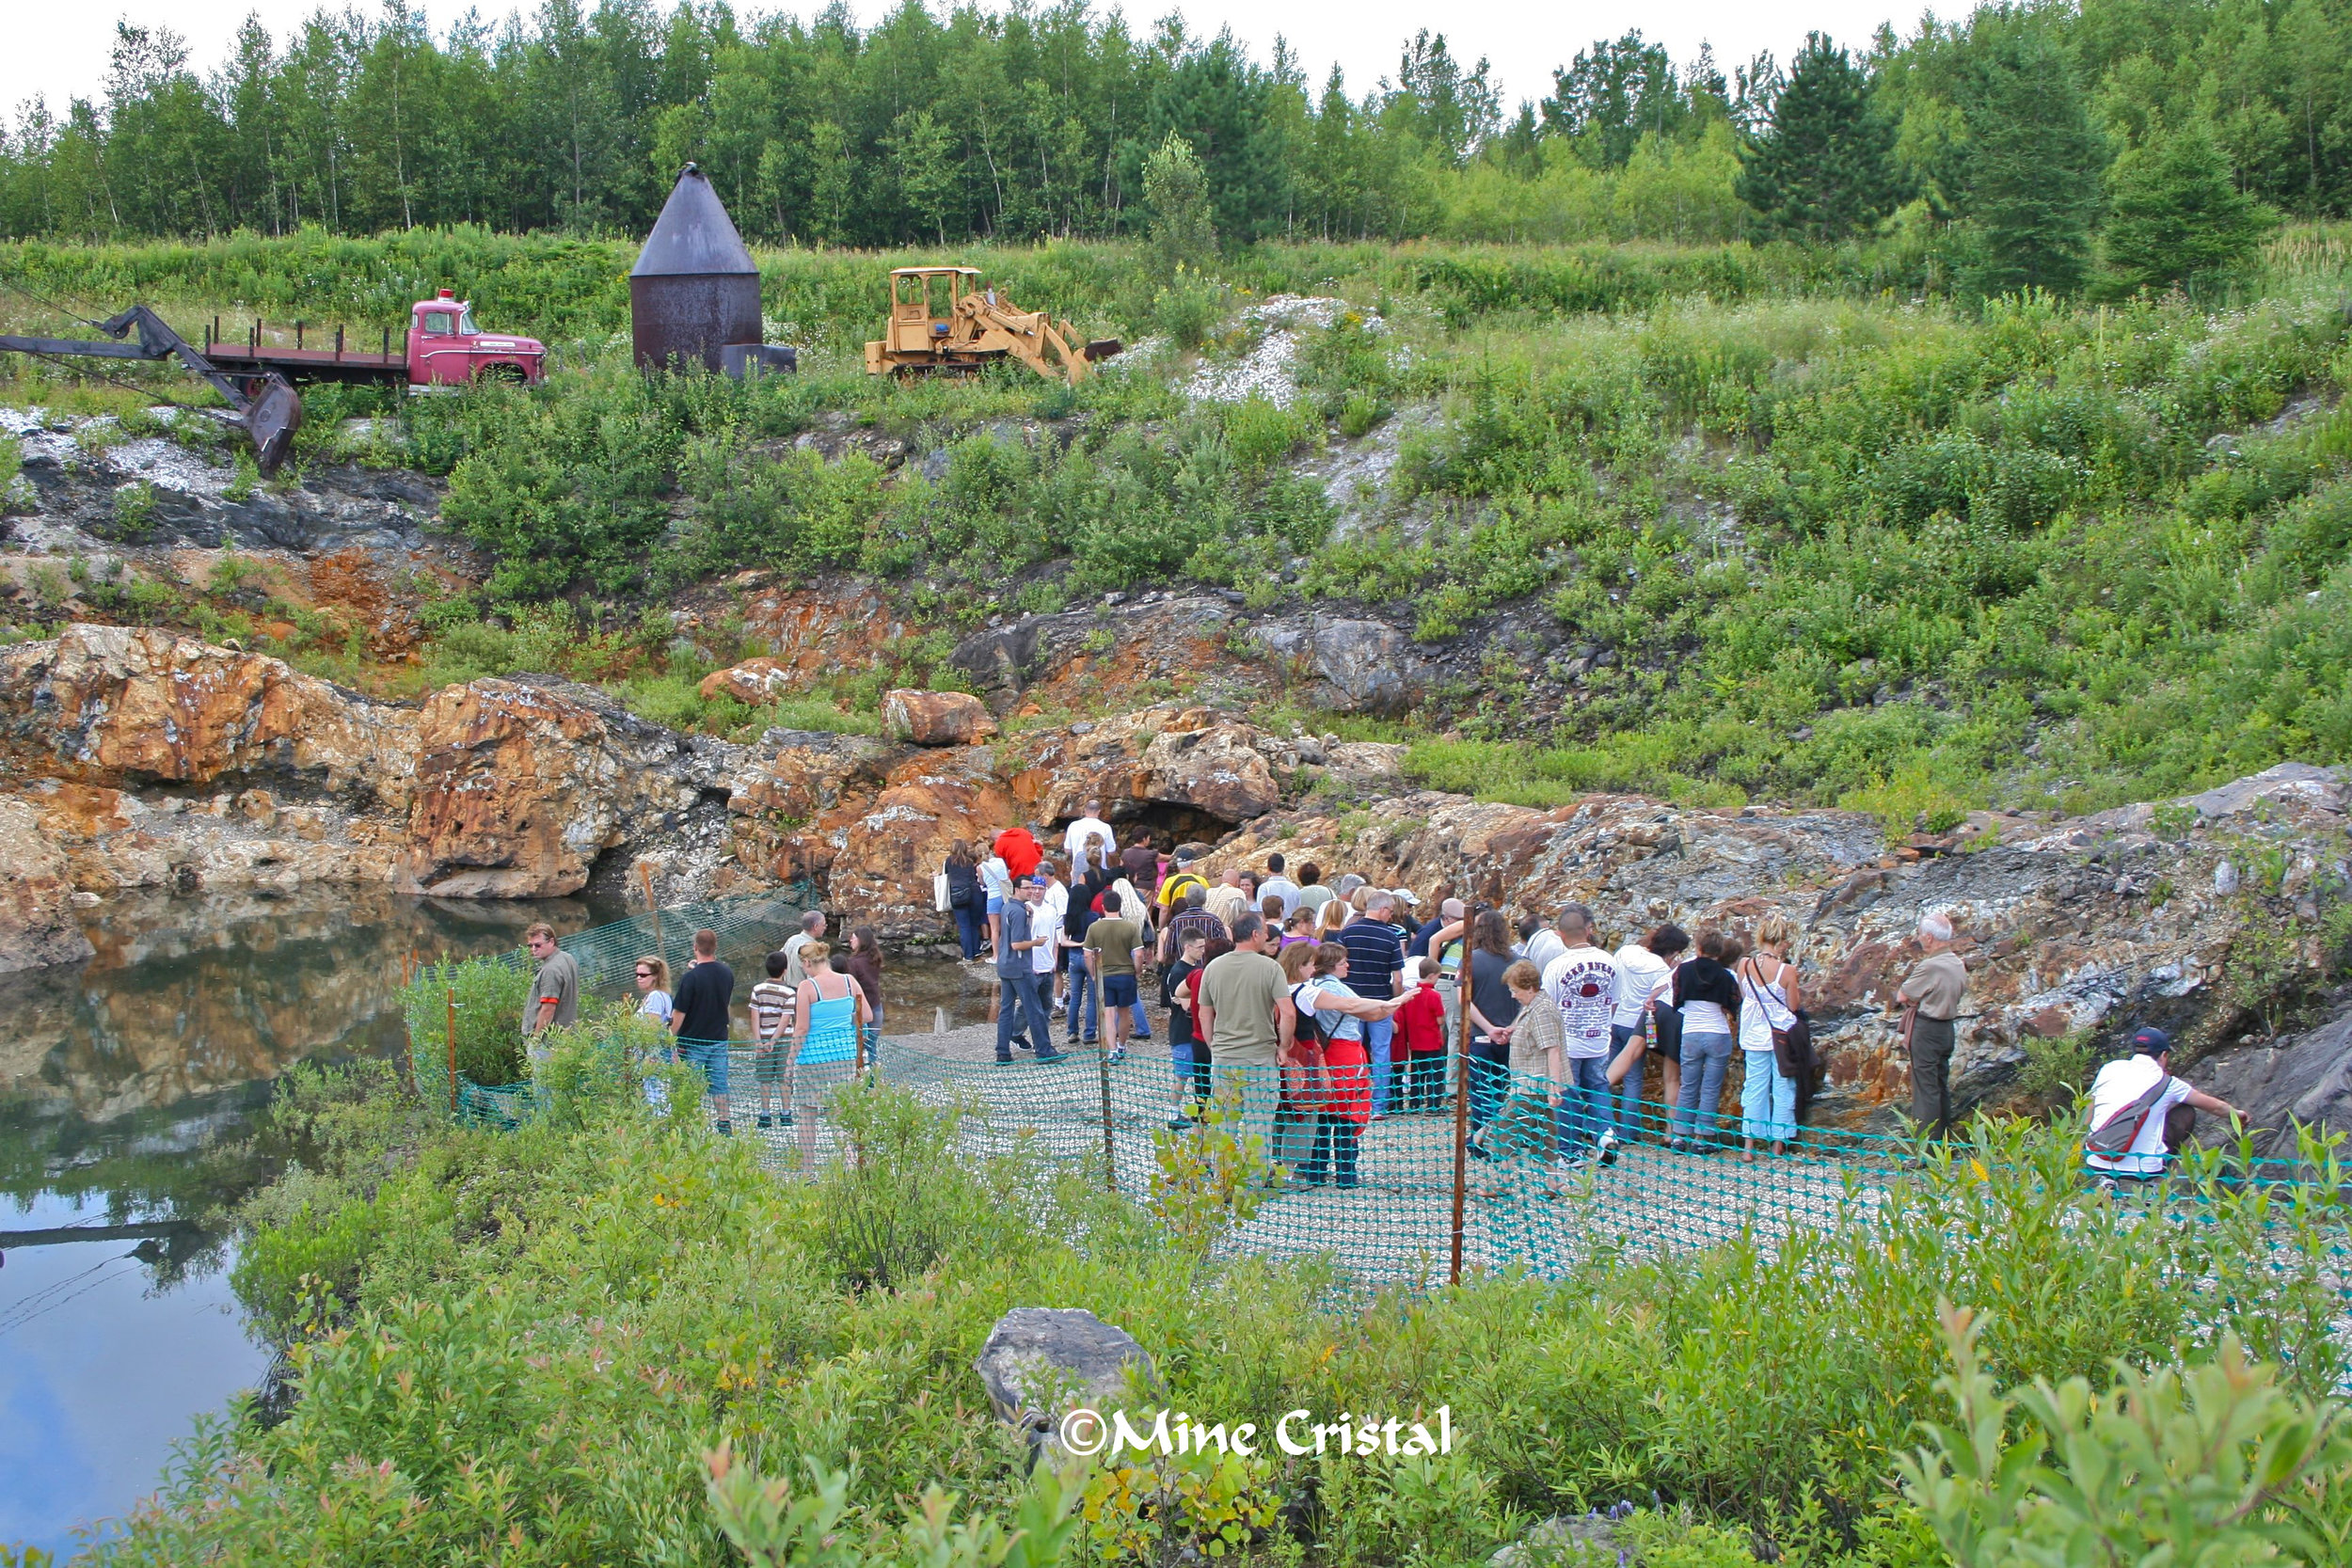 Tour participants examine our crystal mine and admire the unique geological site; a massive white quartz vein with sparkling crystals.